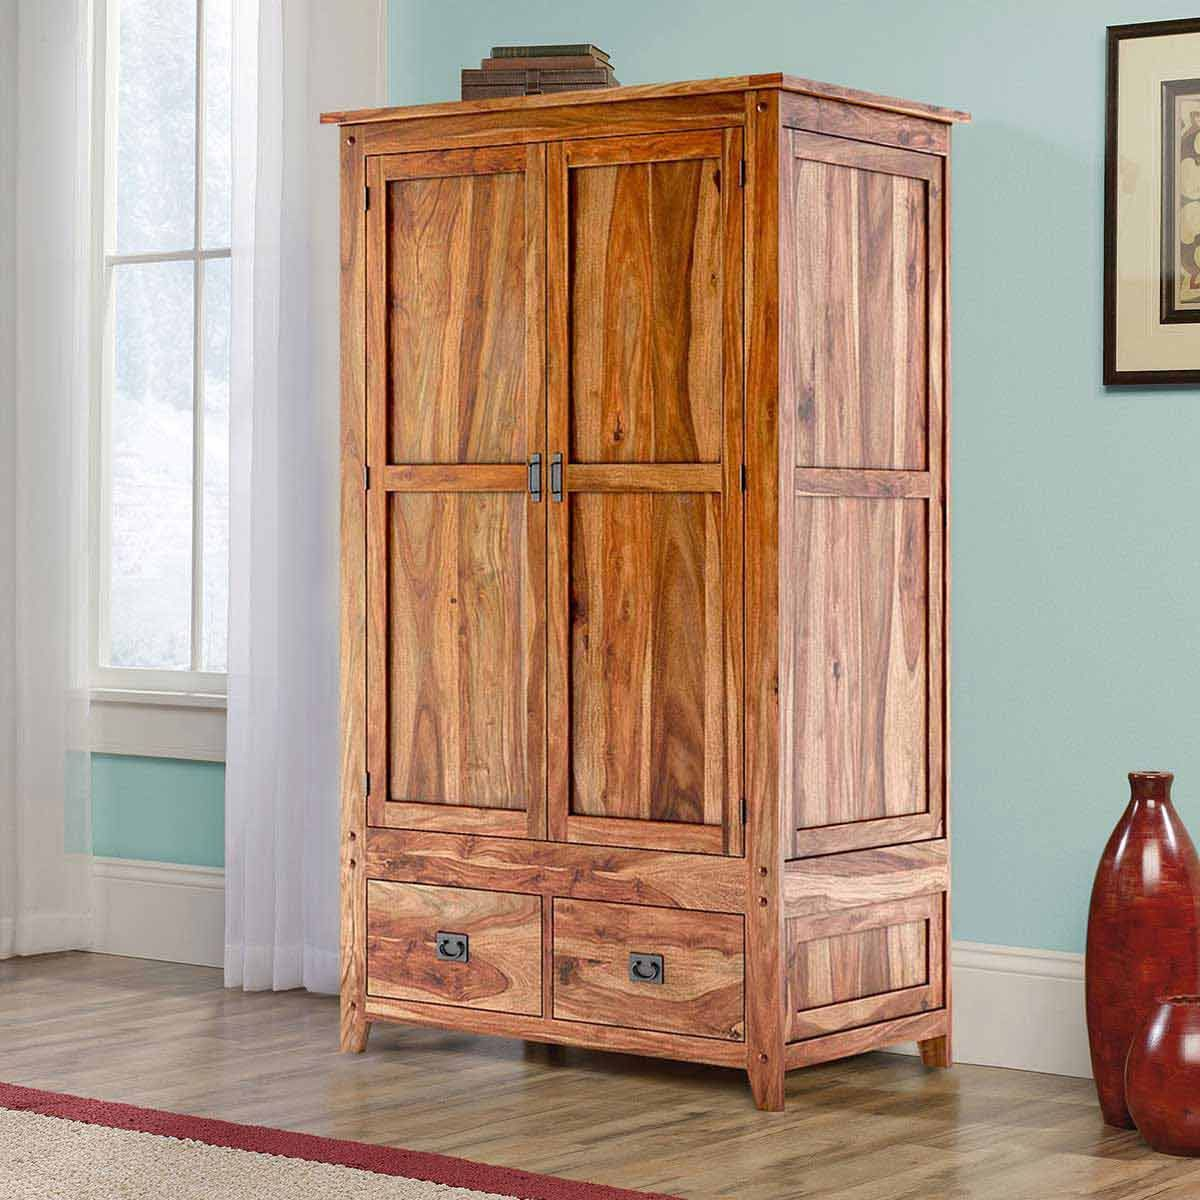 stain wardrobes wood warm s is a from crockin archbold this finished wardrobe honey furniture in new pine solid